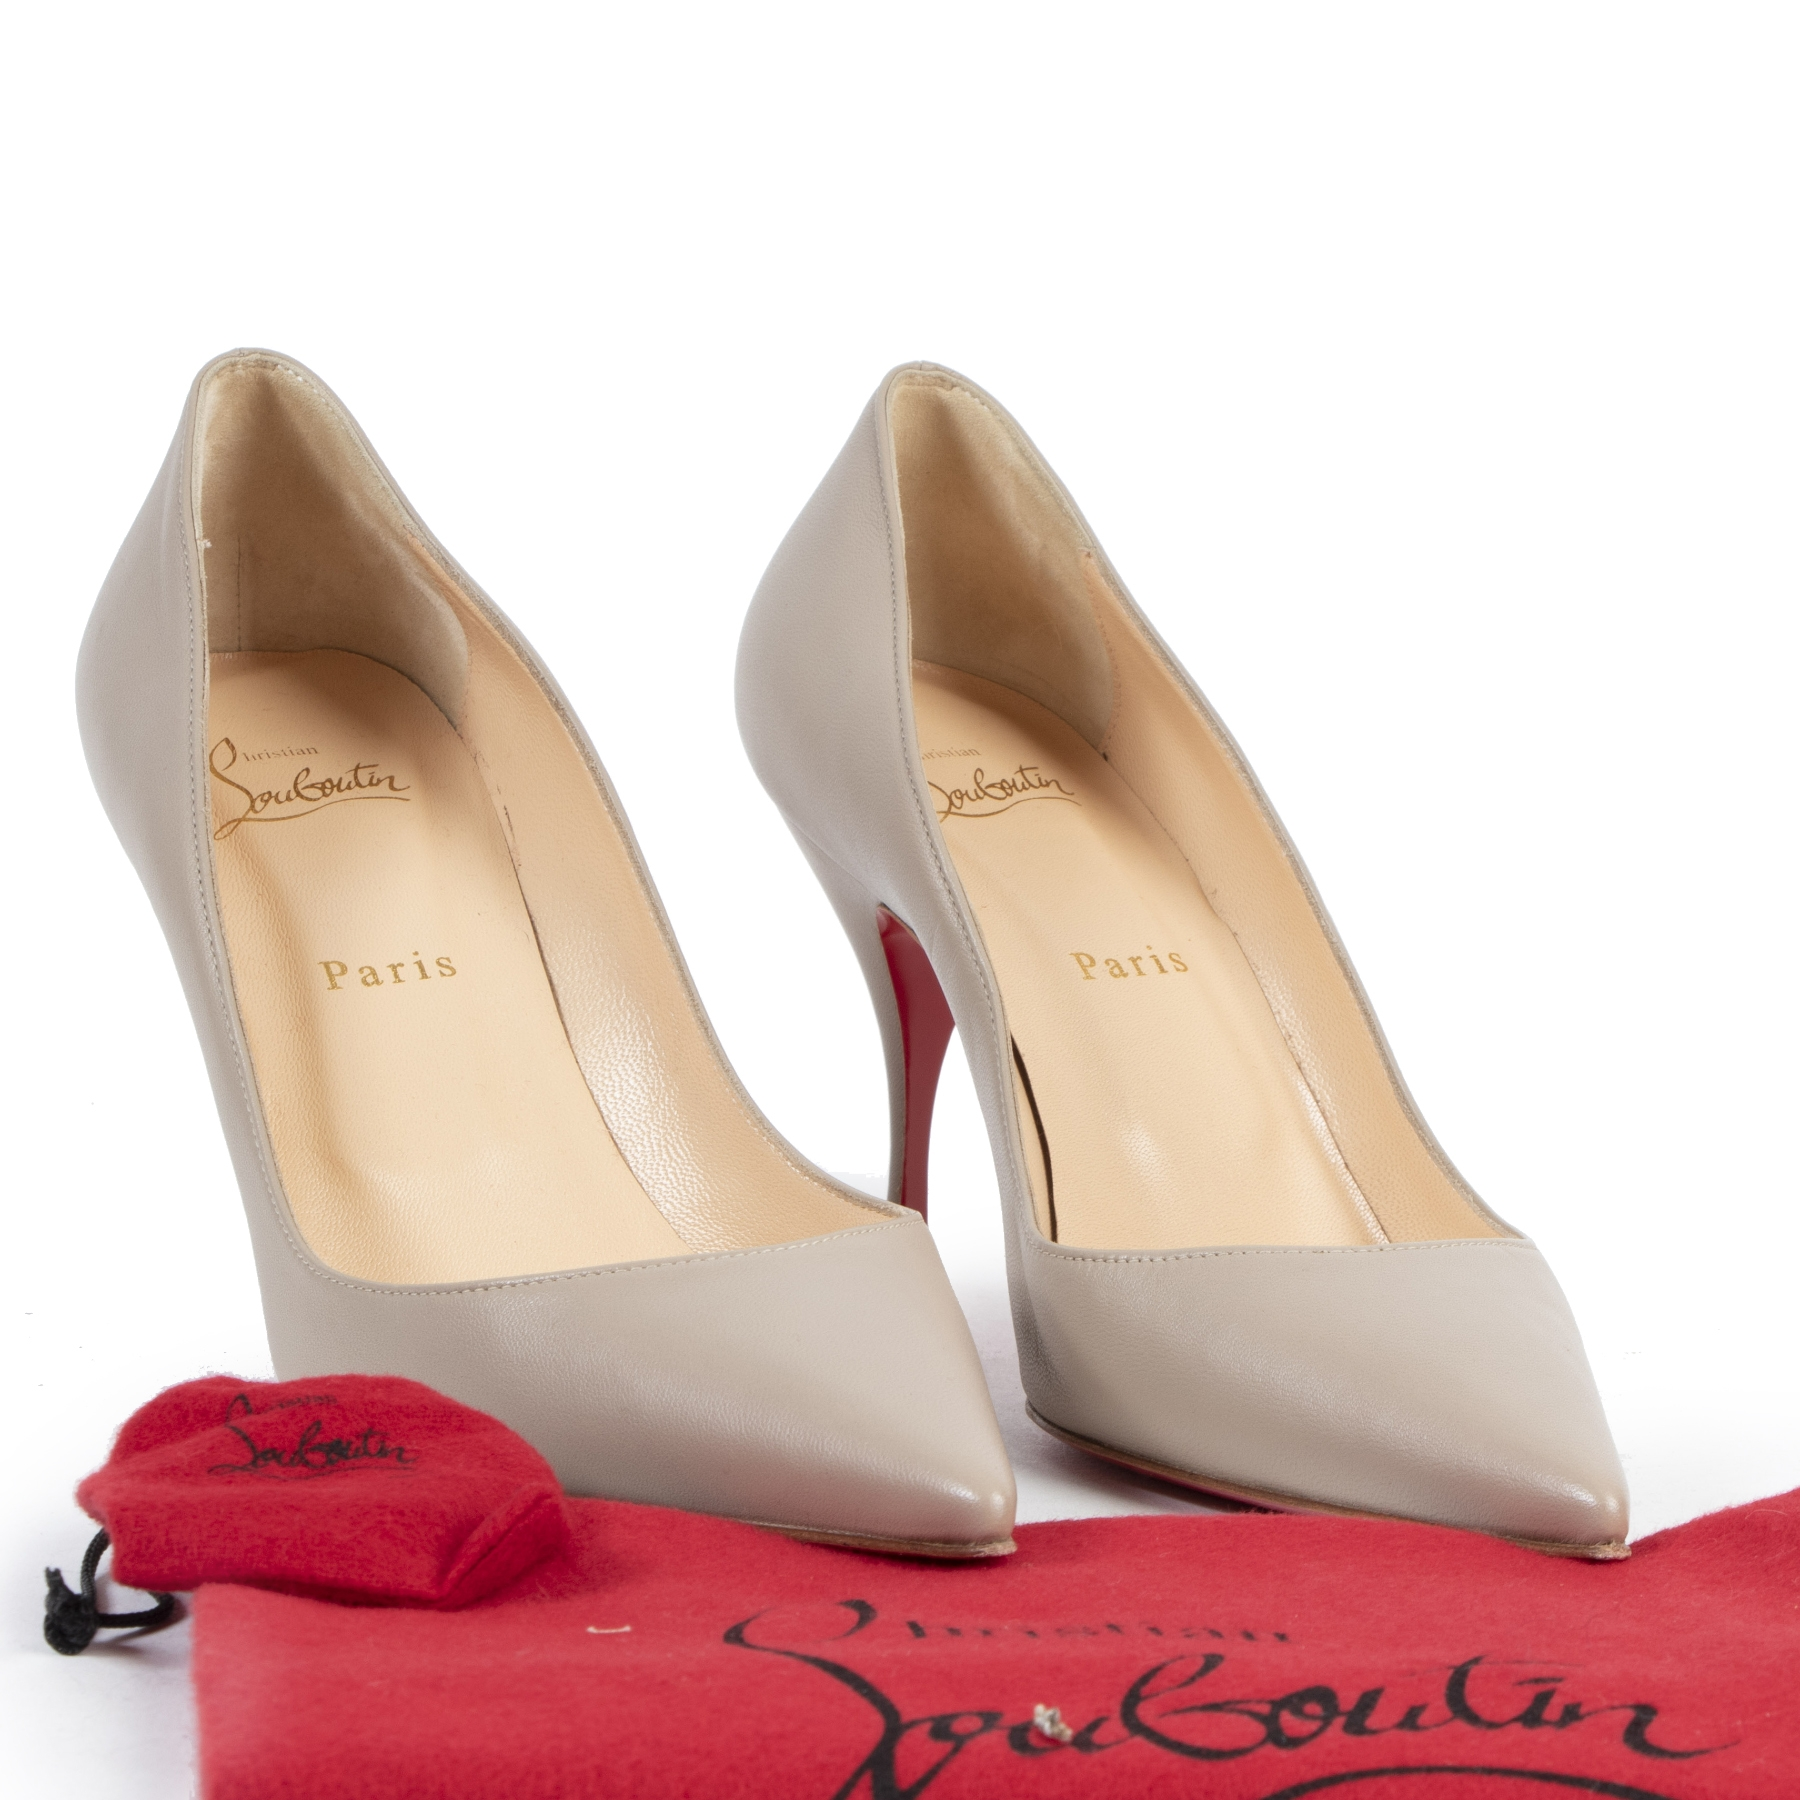 Authentique seconde-main vintage Louboutin Clare 80 Pumps - Size 39,5 achète en ligne webshop LabelLOV